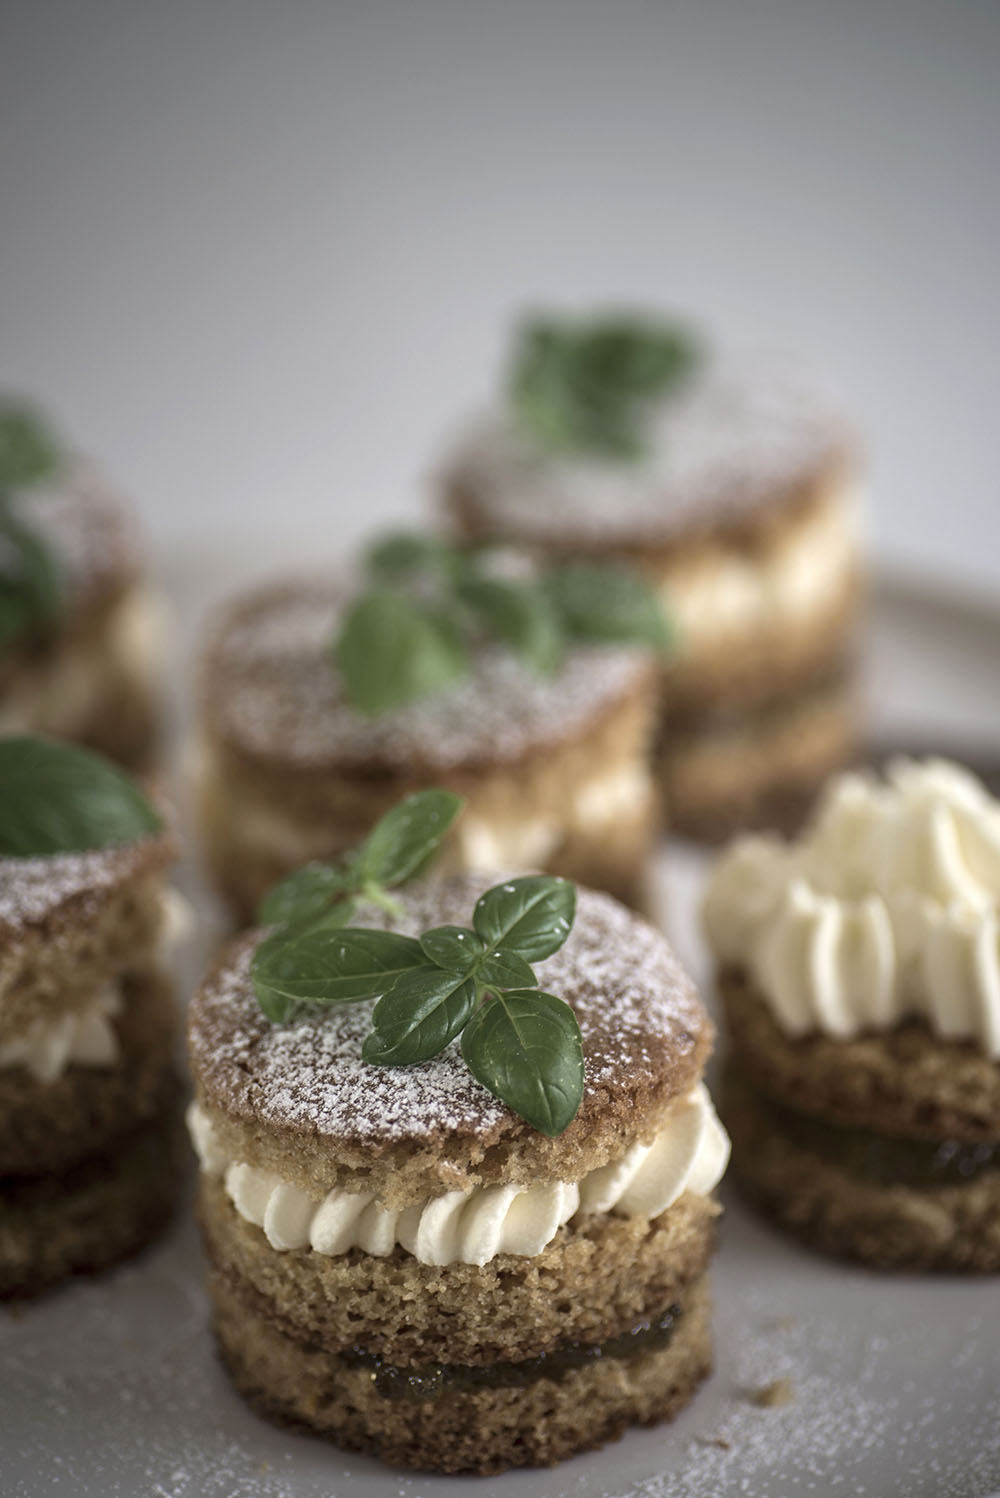 Mini sponge cakes with lime marmalade and basil cream